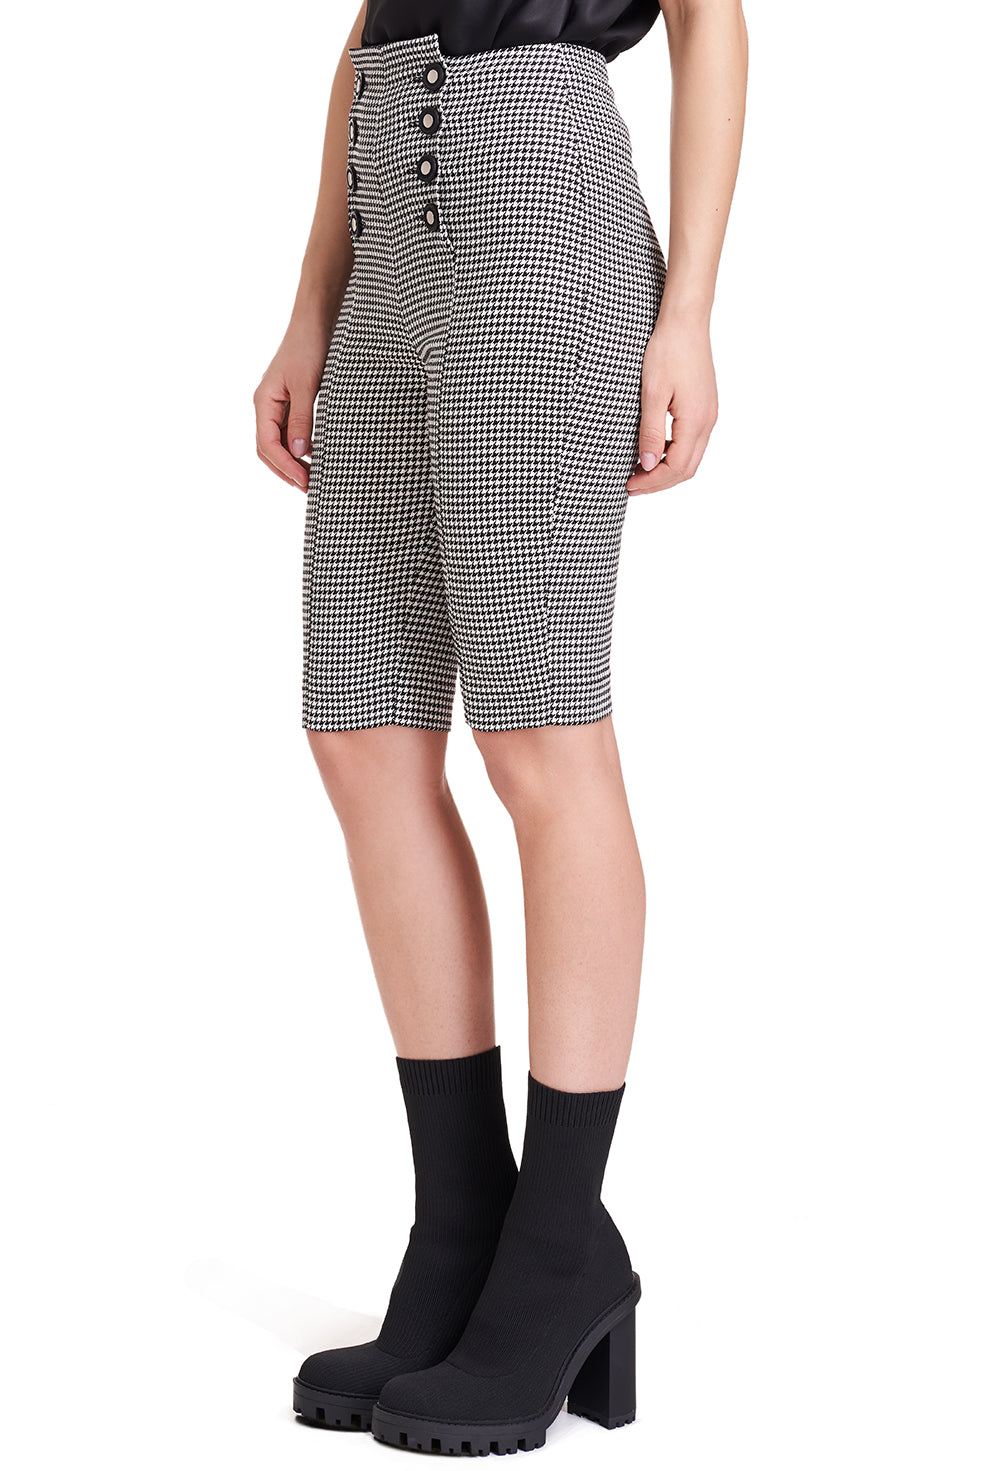 West Knee Length Checked Pants